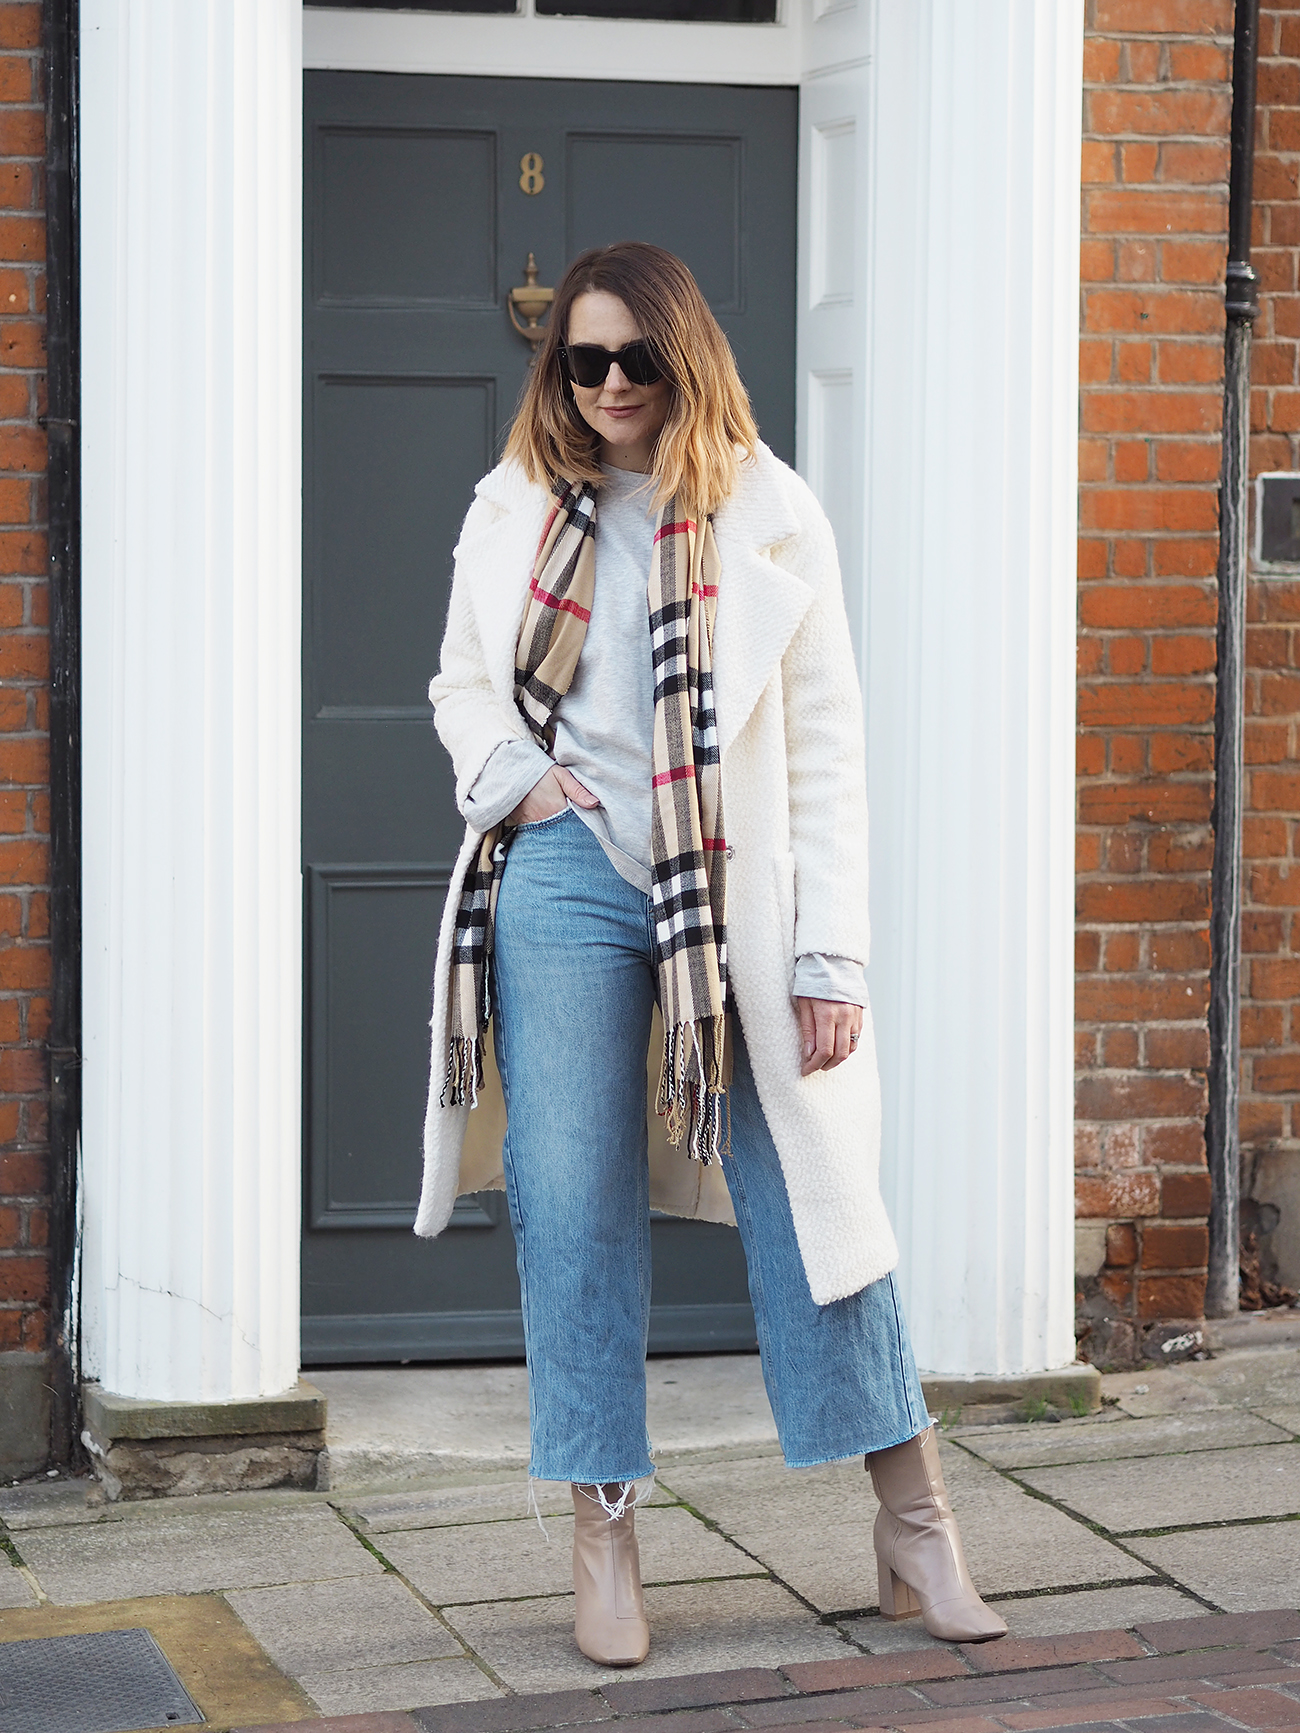 cream coat and burberry scarf outfit with jeans